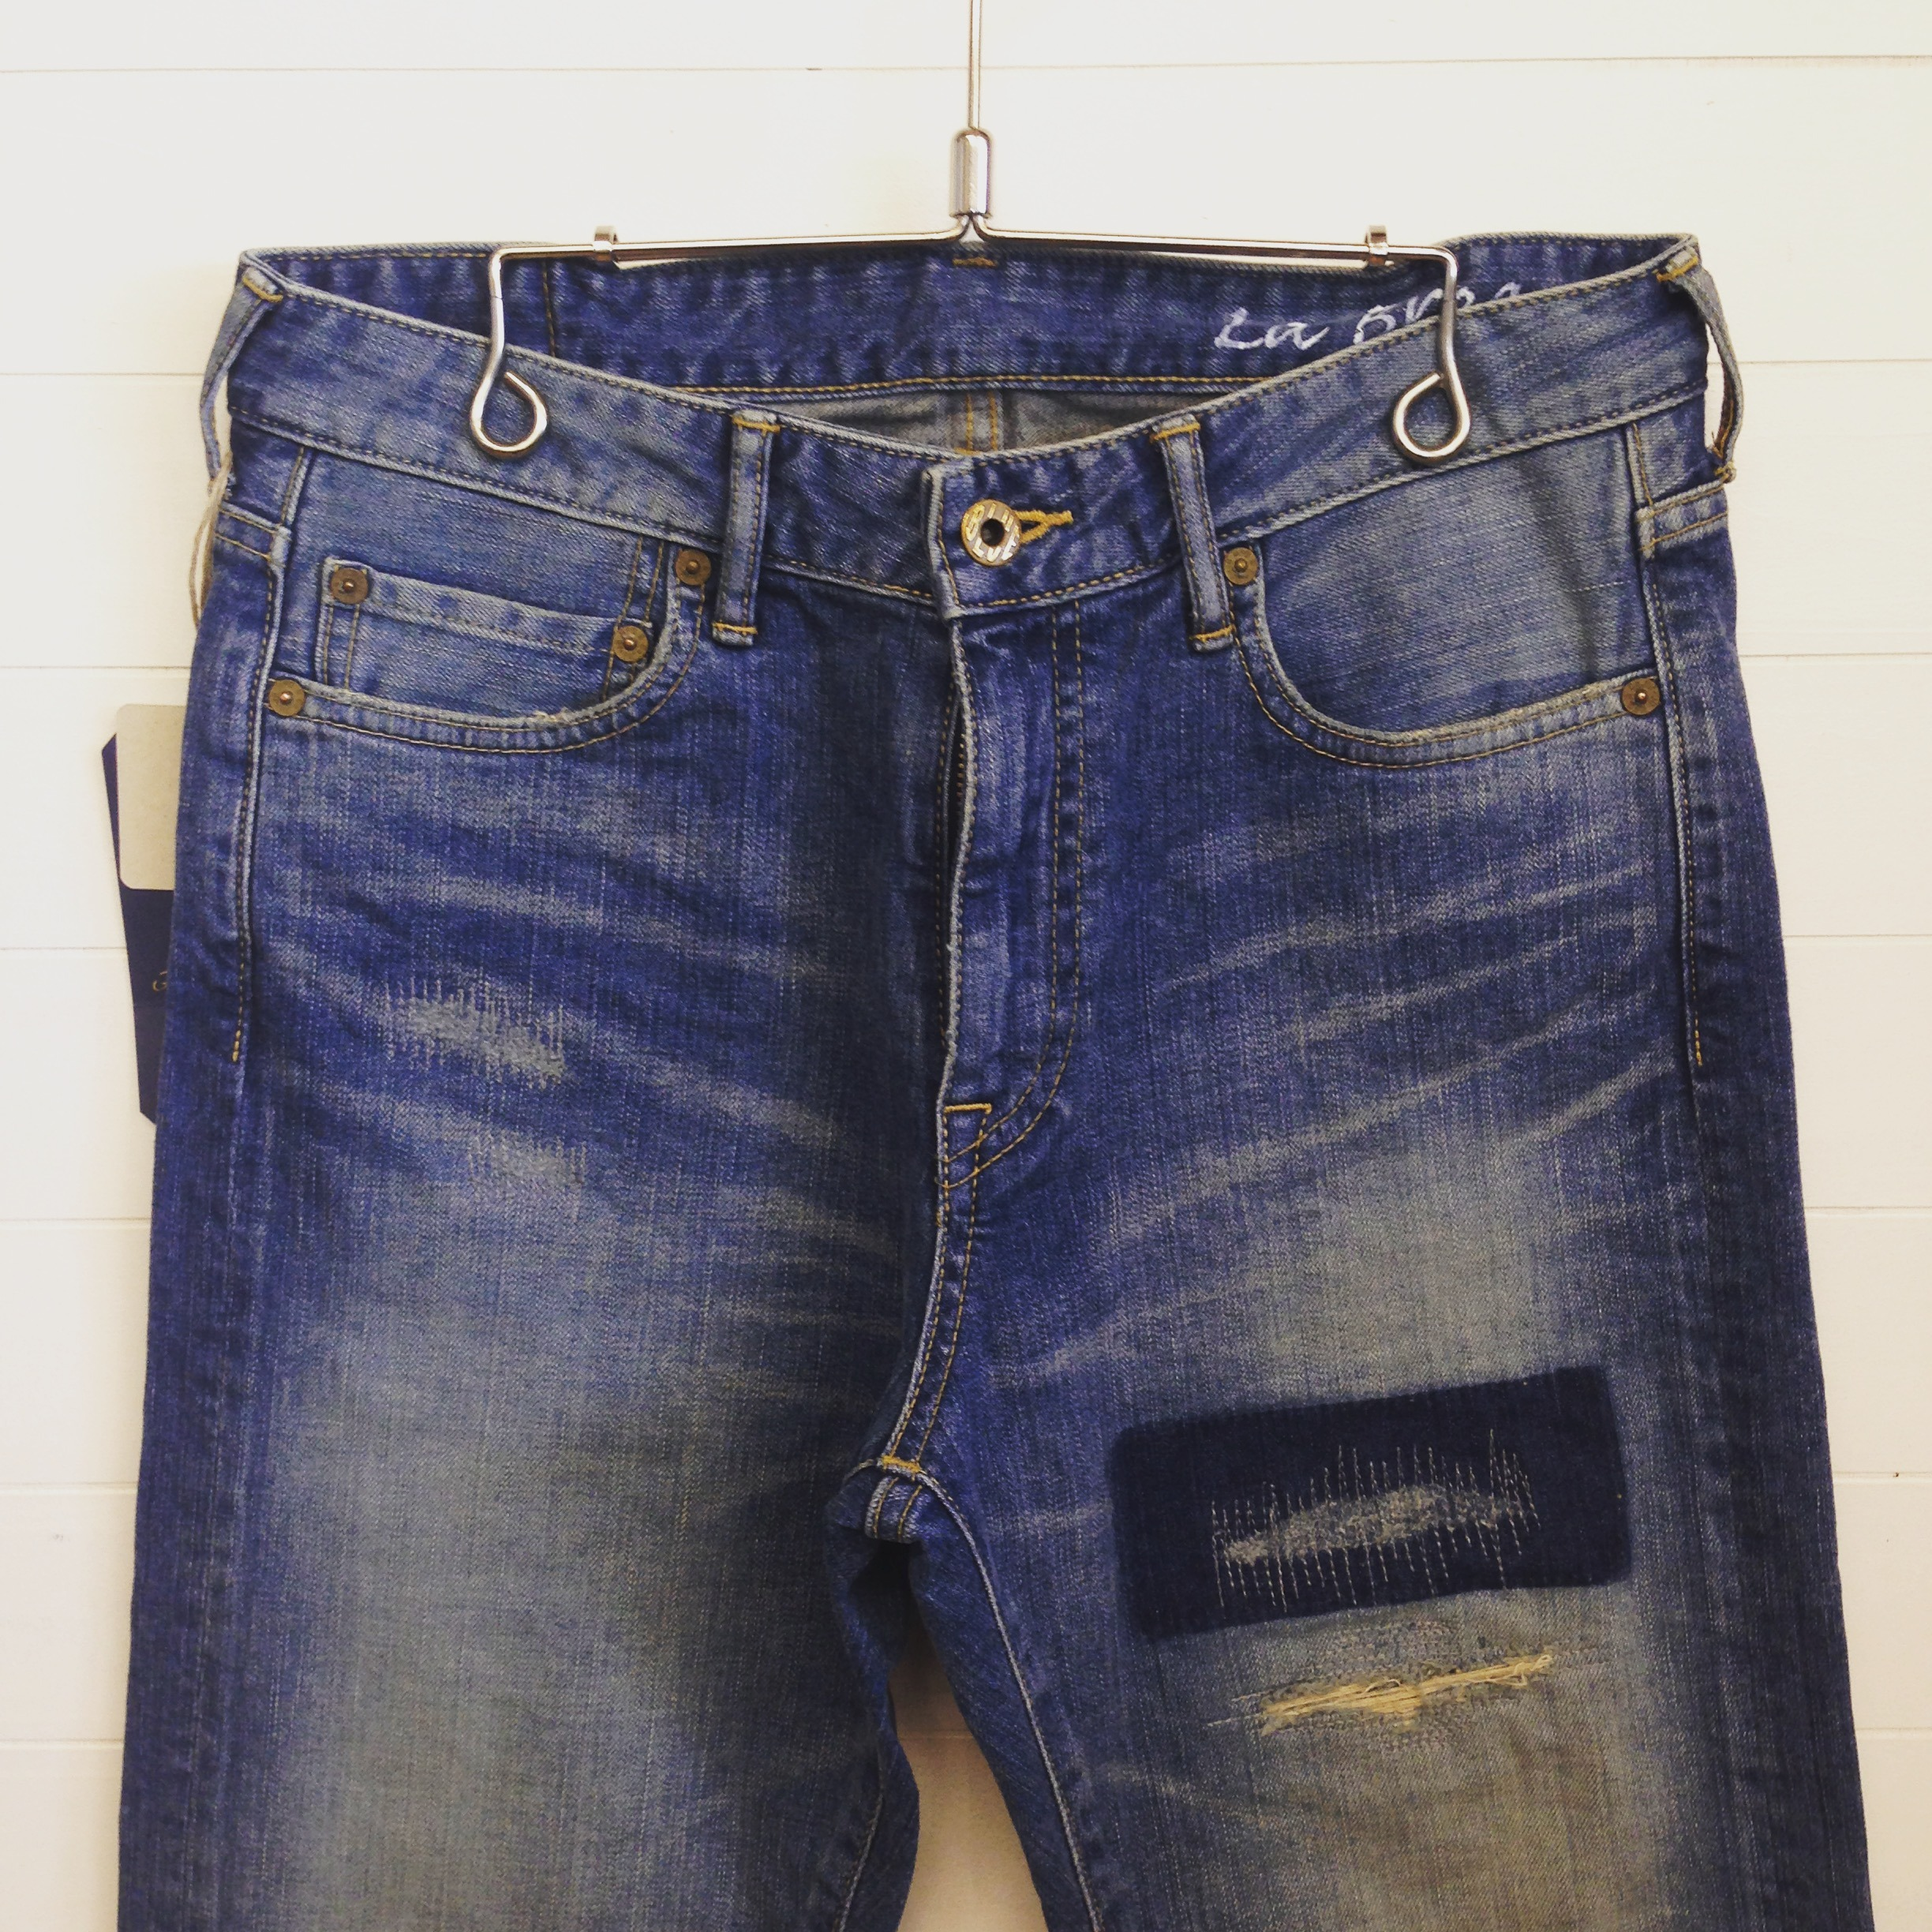 JAPAN BLUE JEANS(ジャパンブルージーンズ) 12oz CALIF DENIM LA BREA JB2301LB